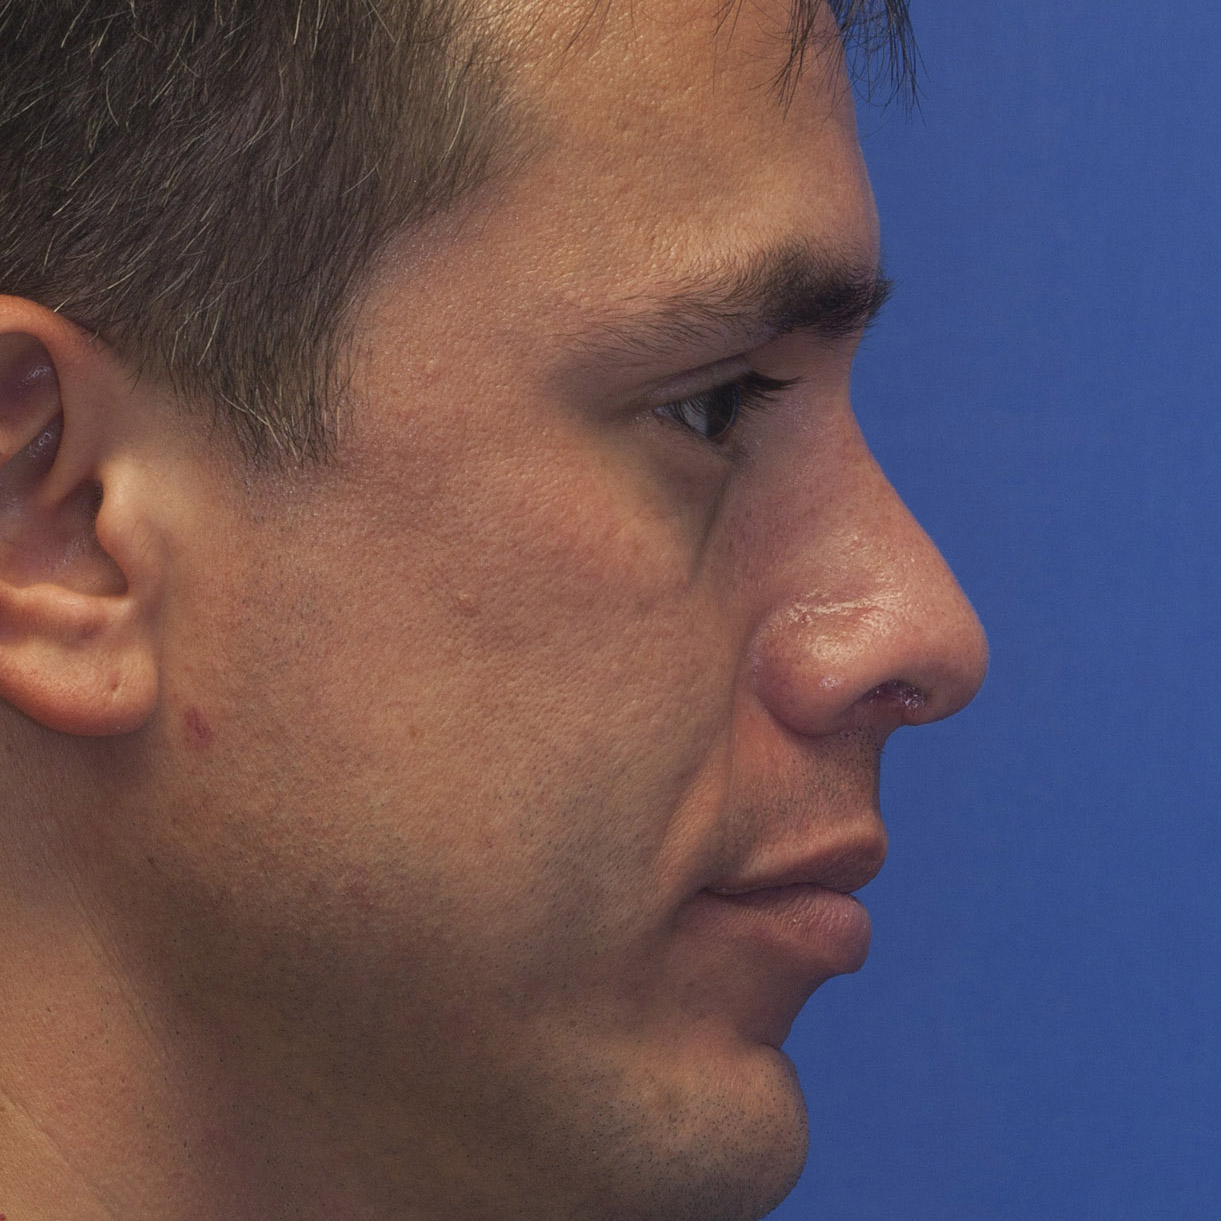 Revision rhinoplasty showing treatment of pollybeak deformity using cartilage grafting